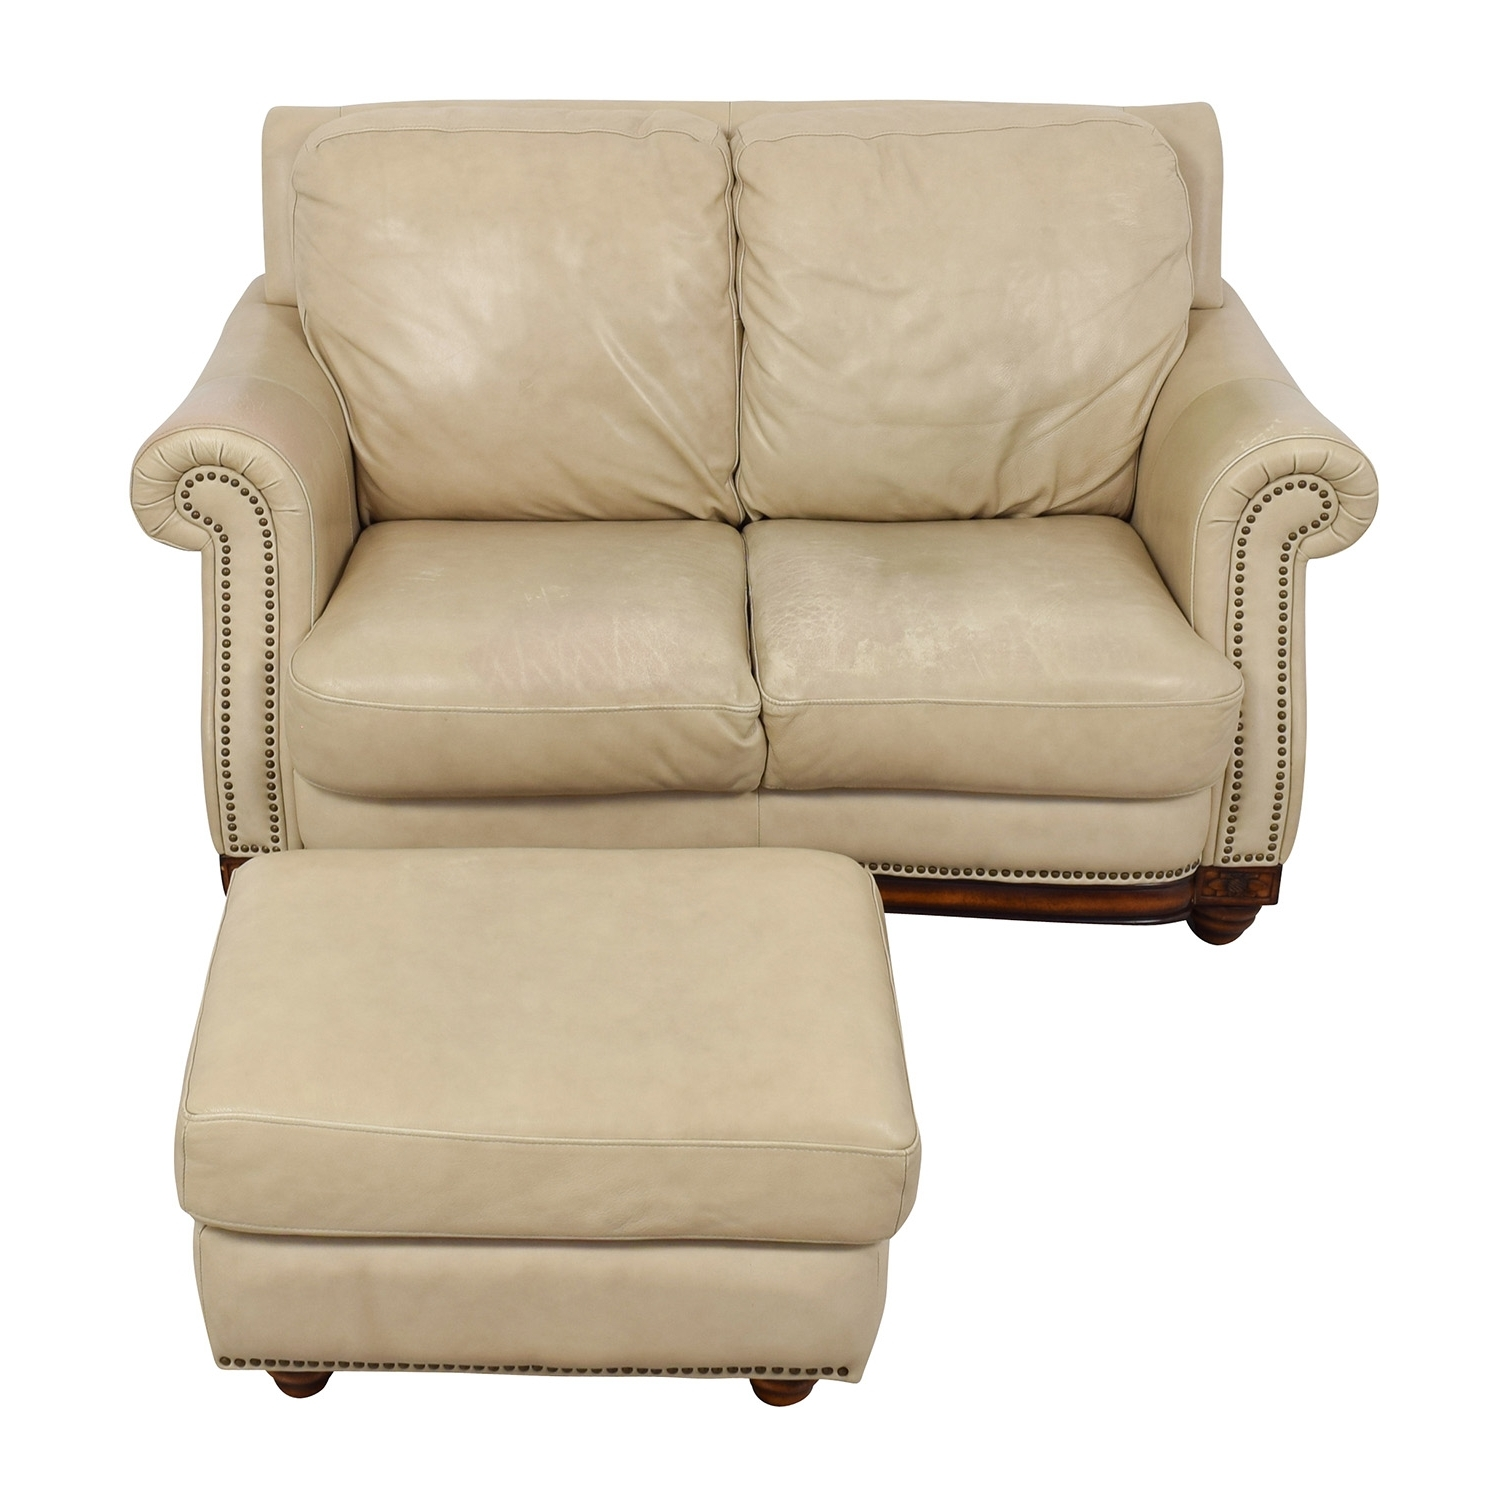 [%74% Off – Raymour & Flanigan Raymour & Flanigan Studded Tan Intended For Well Known Loveseats With Ottoman|Loveseats With Ottoman Regarding Most Popular 74% Off – Raymour & Flanigan Raymour & Flanigan Studded Tan|Well Known Loveseats With Ottoman Intended For 74% Off – Raymour & Flanigan Raymour & Flanigan Studded Tan|Preferred 74% Off – Raymour & Flanigan Raymour & Flanigan Studded Tan Within Loveseats With Ottoman%] (View 4 of 15)